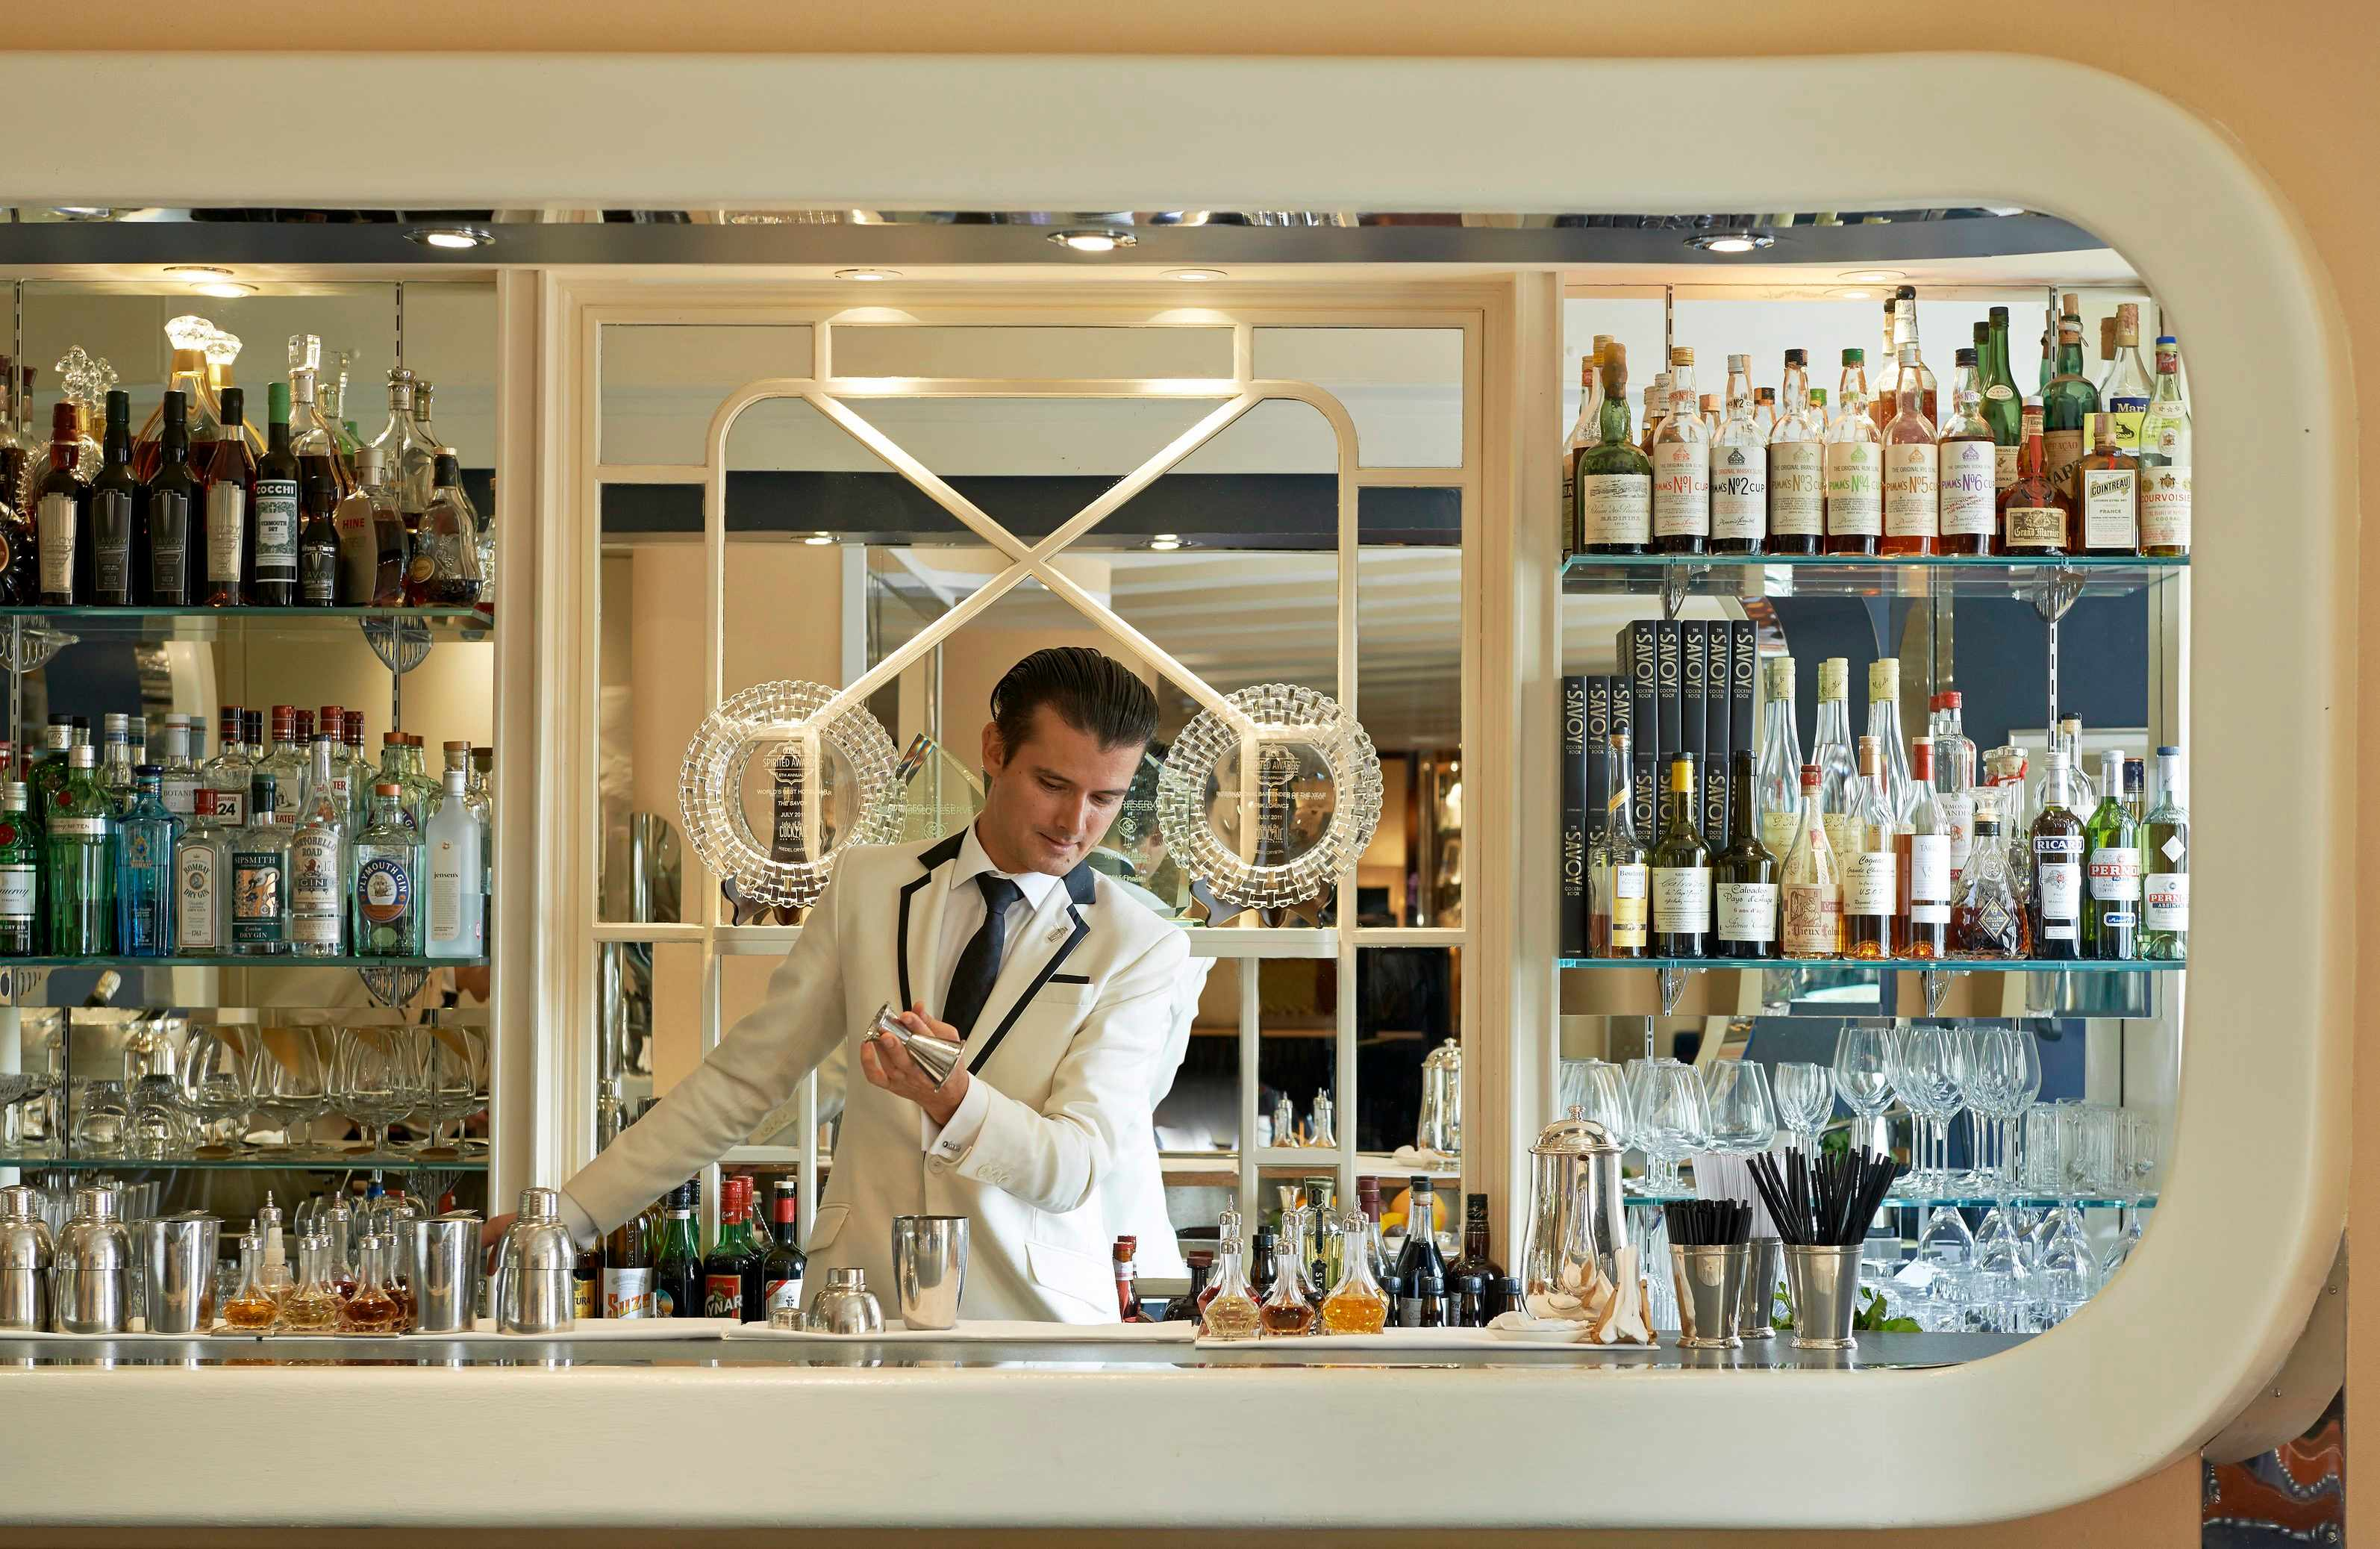 50 Best Bar Awards 2017 Results American Bar Savoy Best Bar In The World